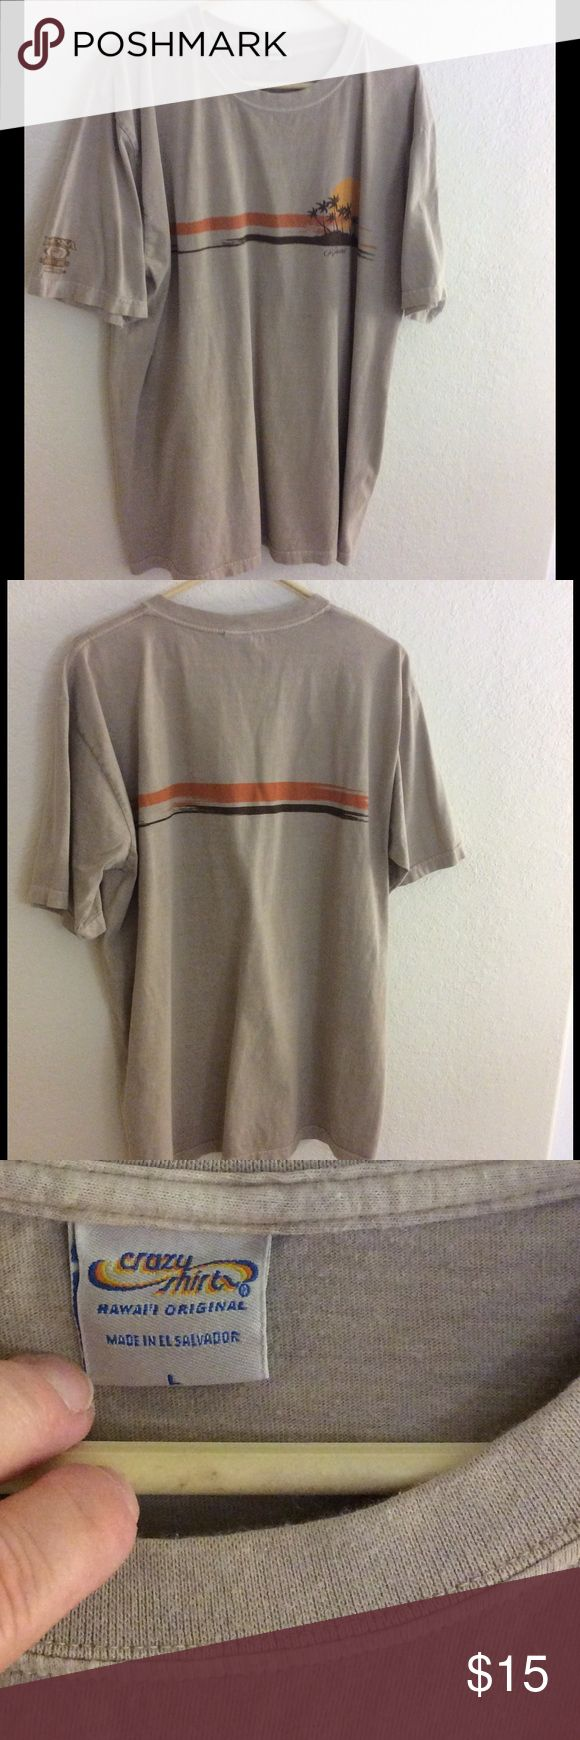 Crazy Shirts Kona Coffee-Dyed Hawaii T Shirt Great T in tan with palm tree sunset graphic, by Crazy Shirts. 100% combed cotton. Size L Excellent used condition. Crazy Shirts Shirts Tees - Short Sleeve